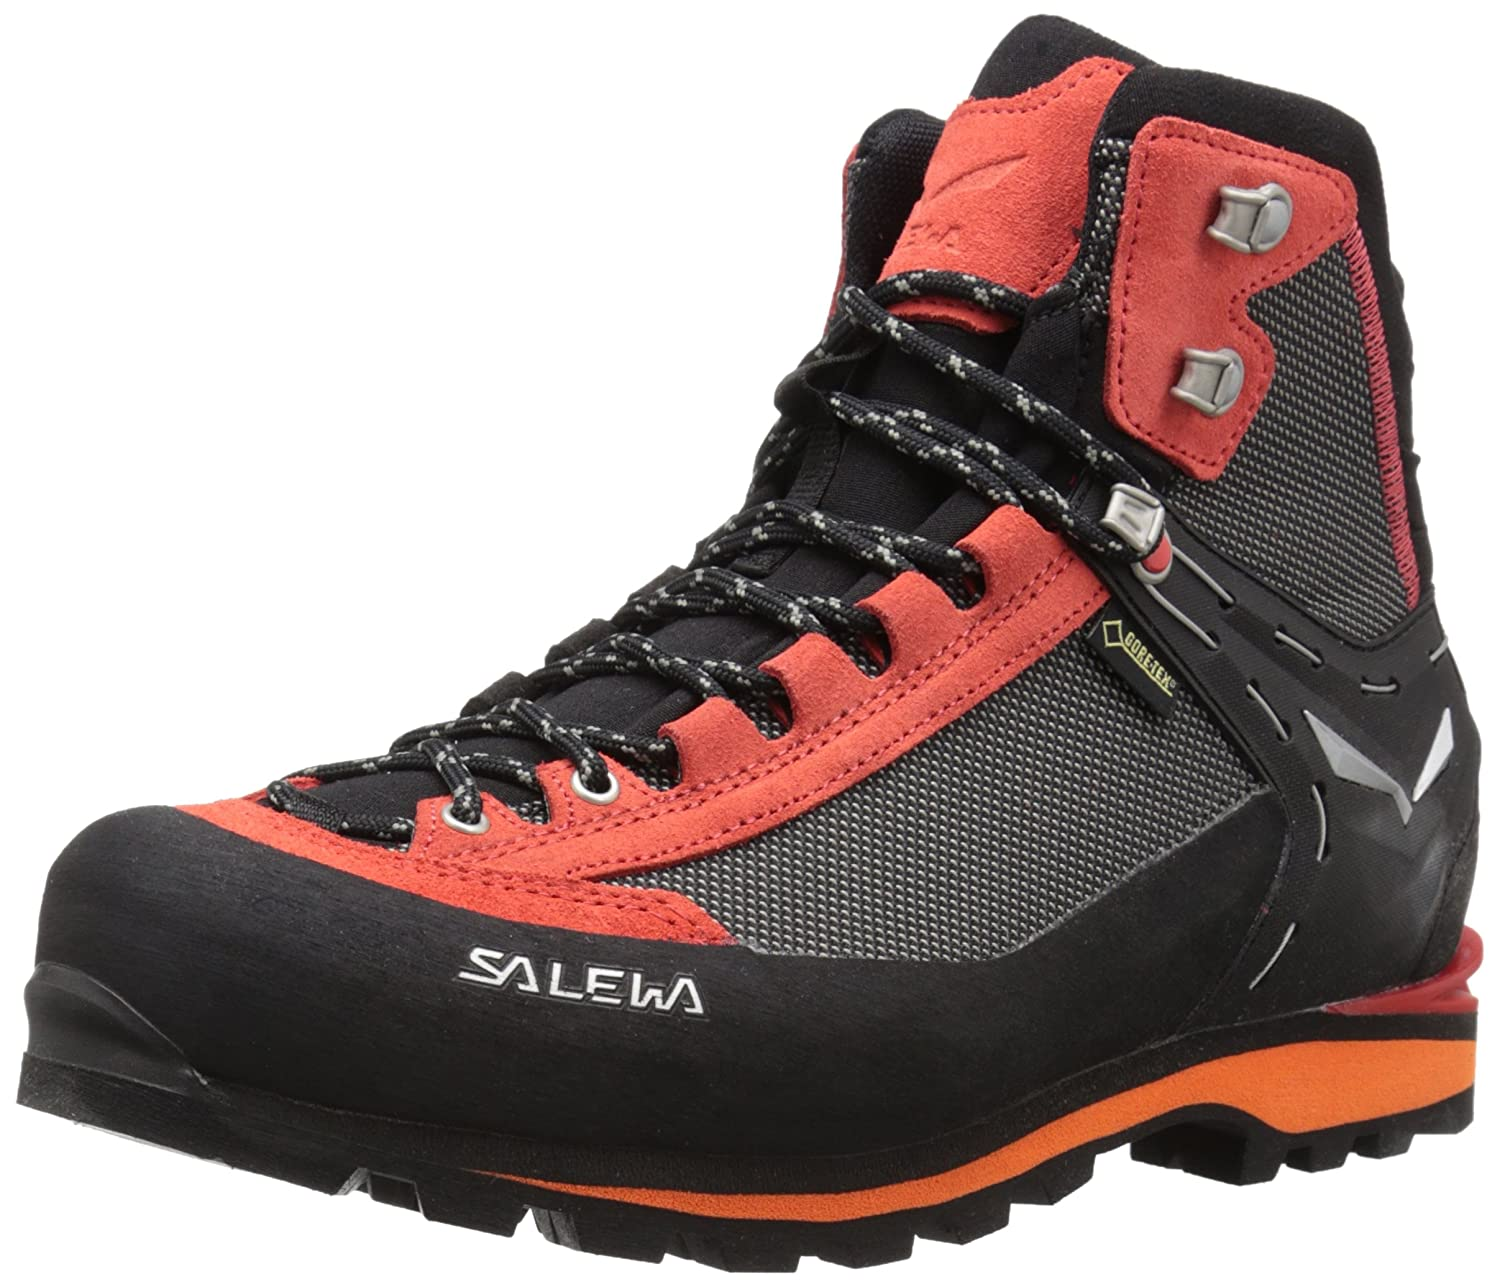 Salewa Men's Crow GTX Mountaineering Boots B011KICF0S 8.5 D(M) US|Black/Papavero